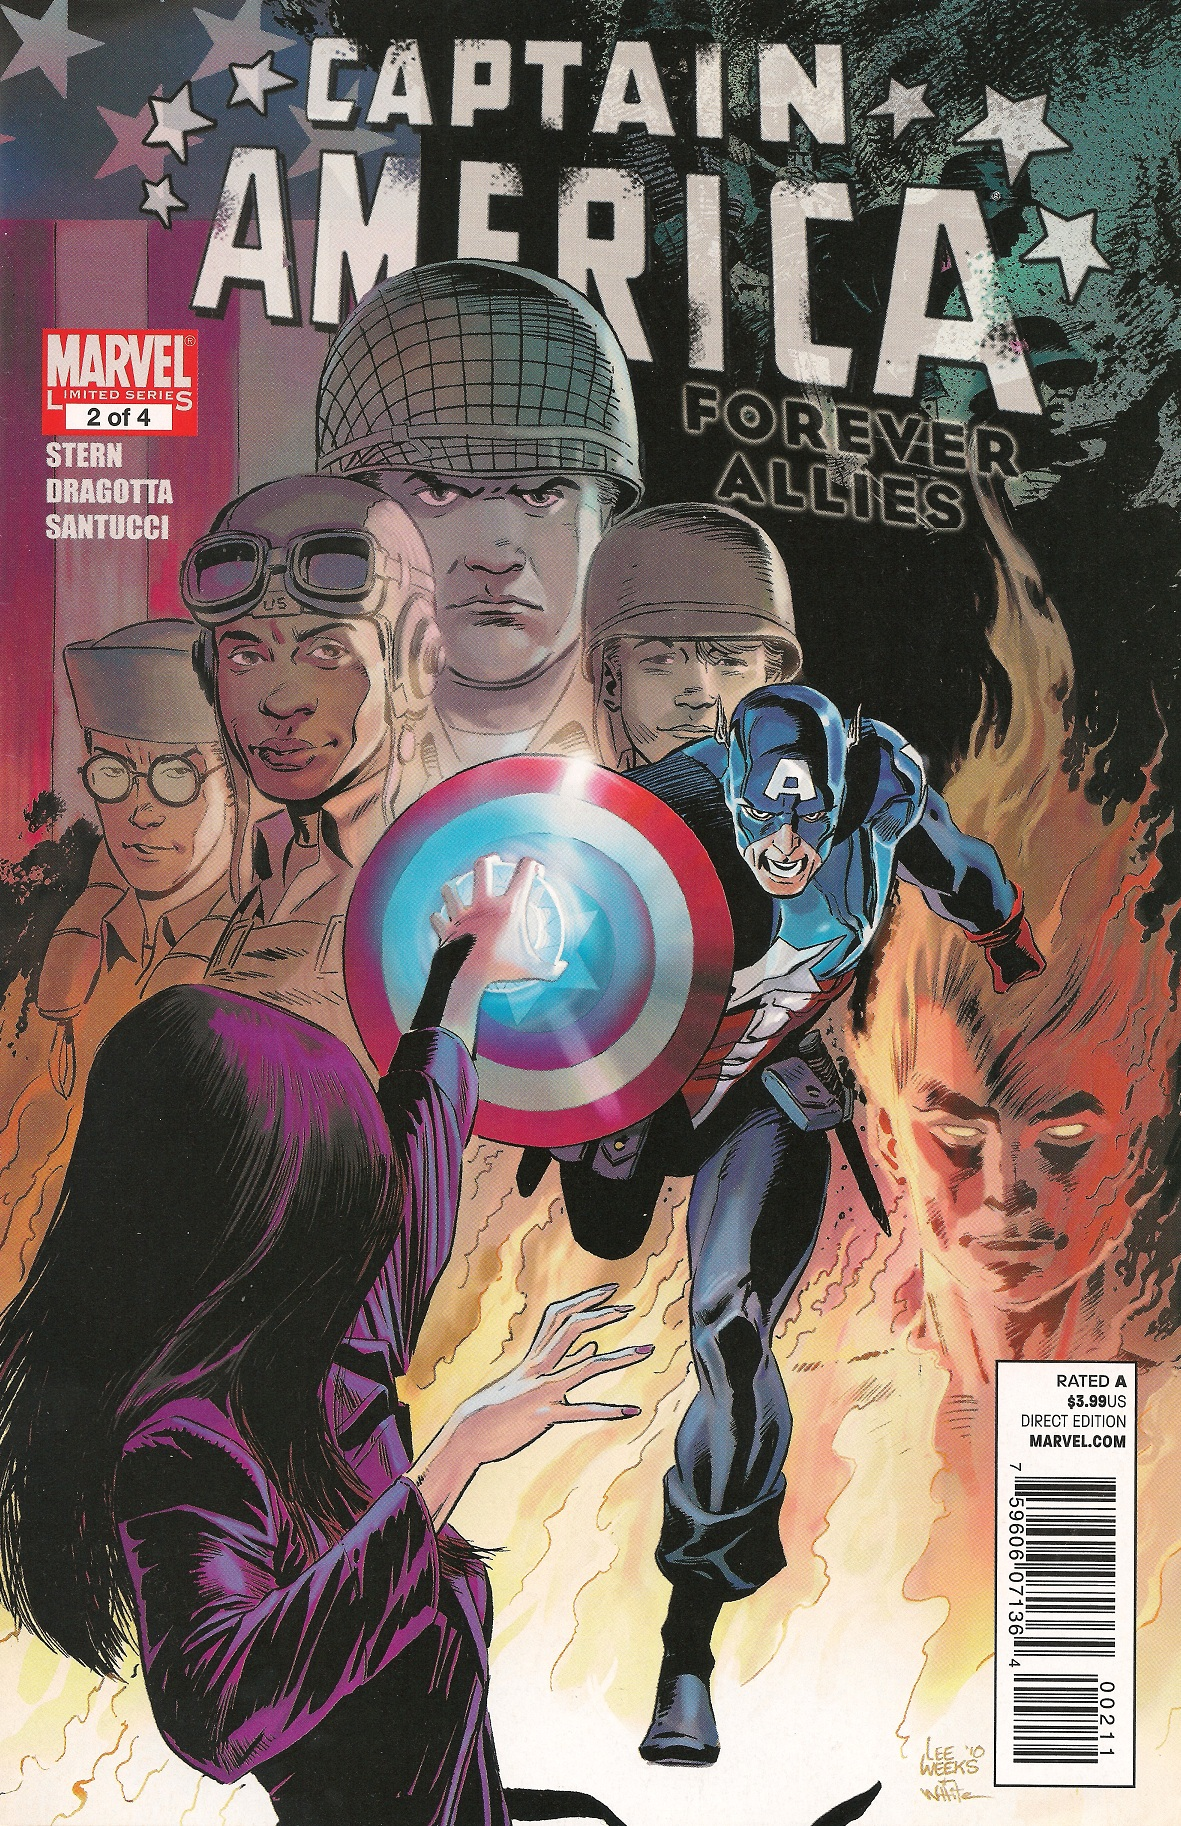 Copertina di Captain America: Forever Allies 2 del 2010, di Lee Weeks e Dean White